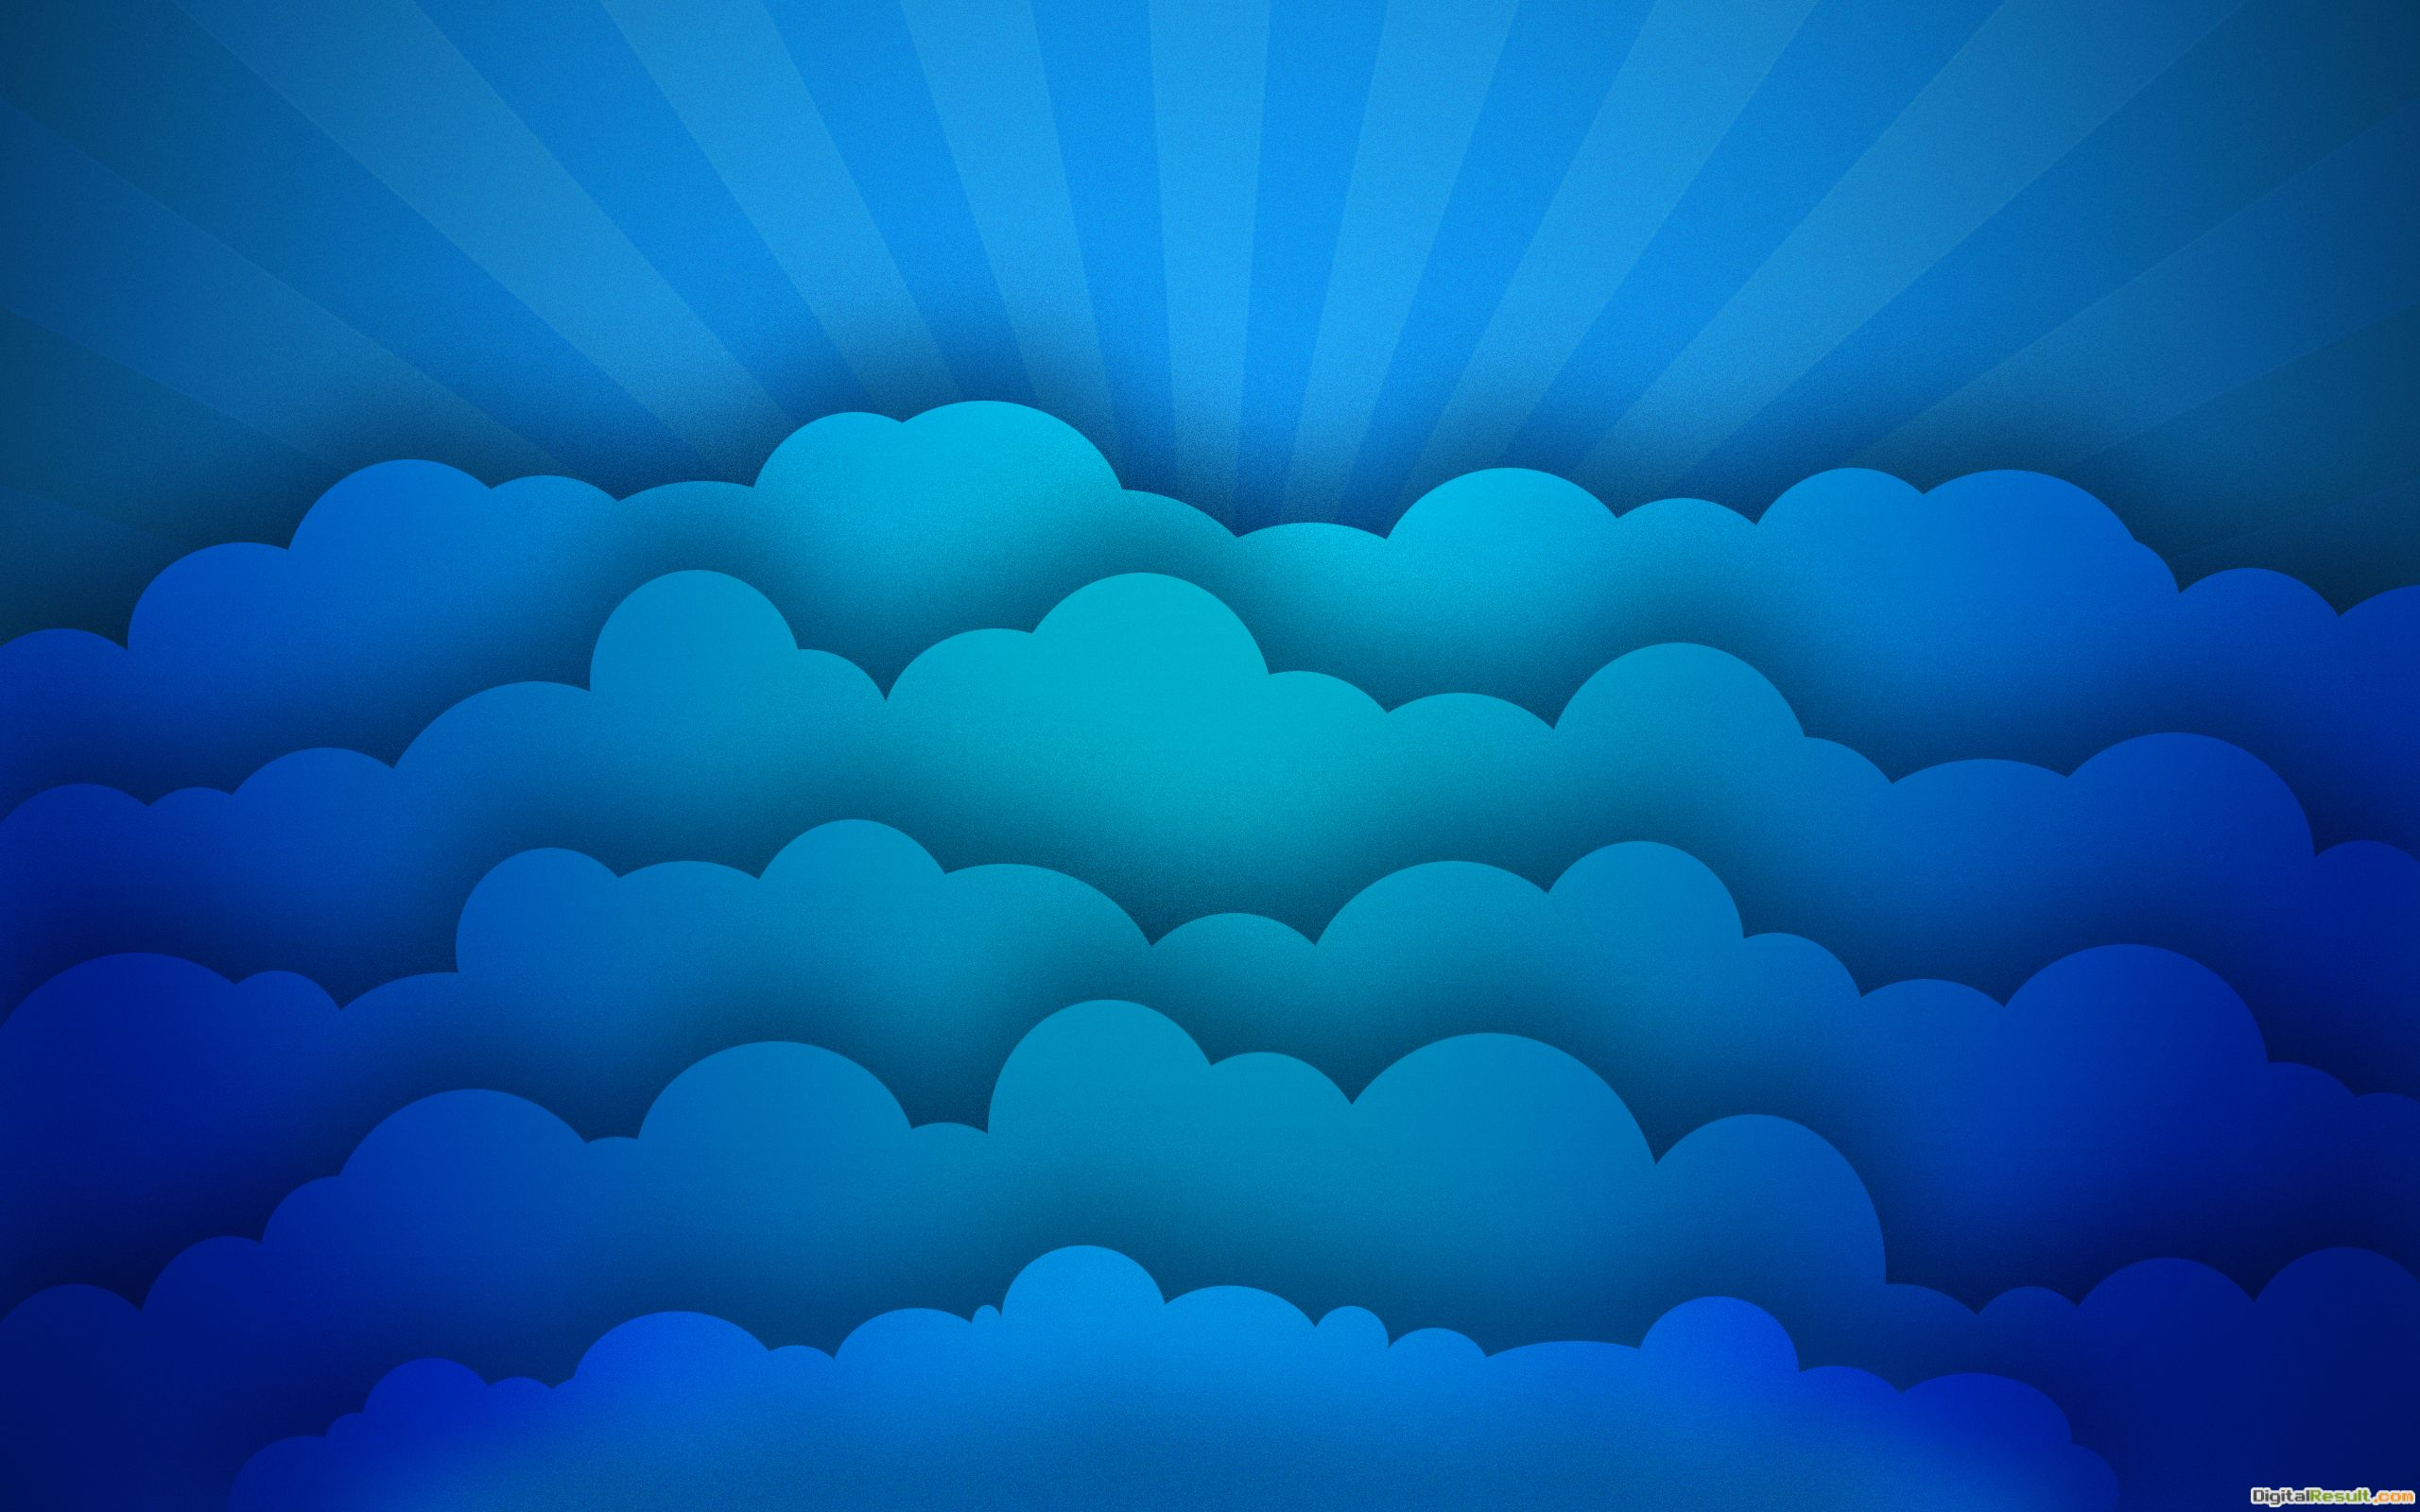 cloud wallpaper by artflip co customization wallpaper vector 2011 2015 1088